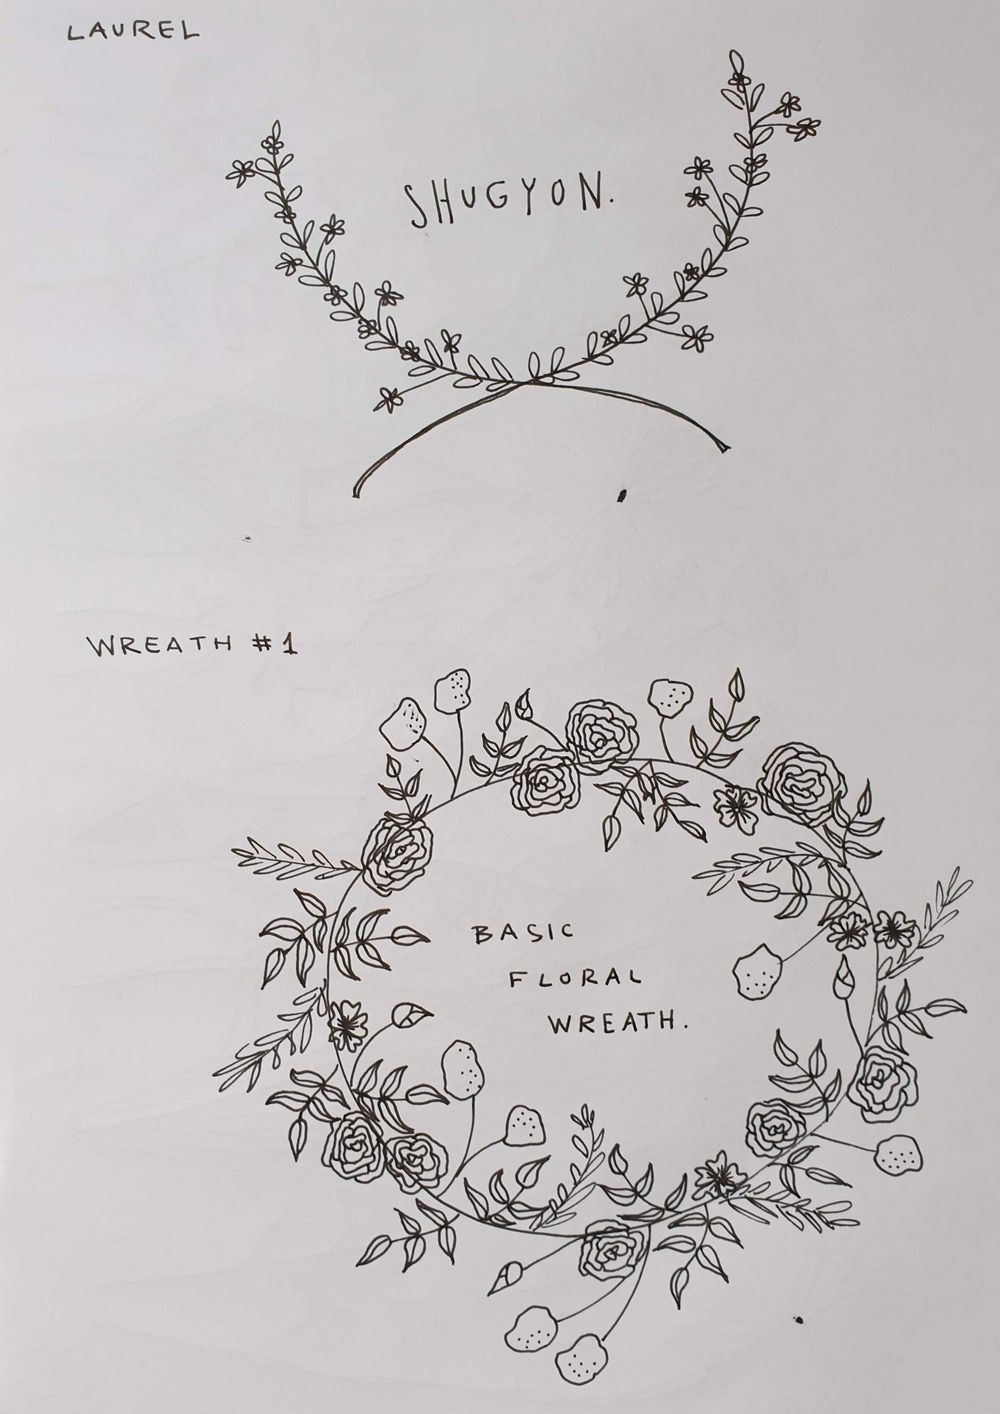 Botanical Line Drawing - image 3 - student project